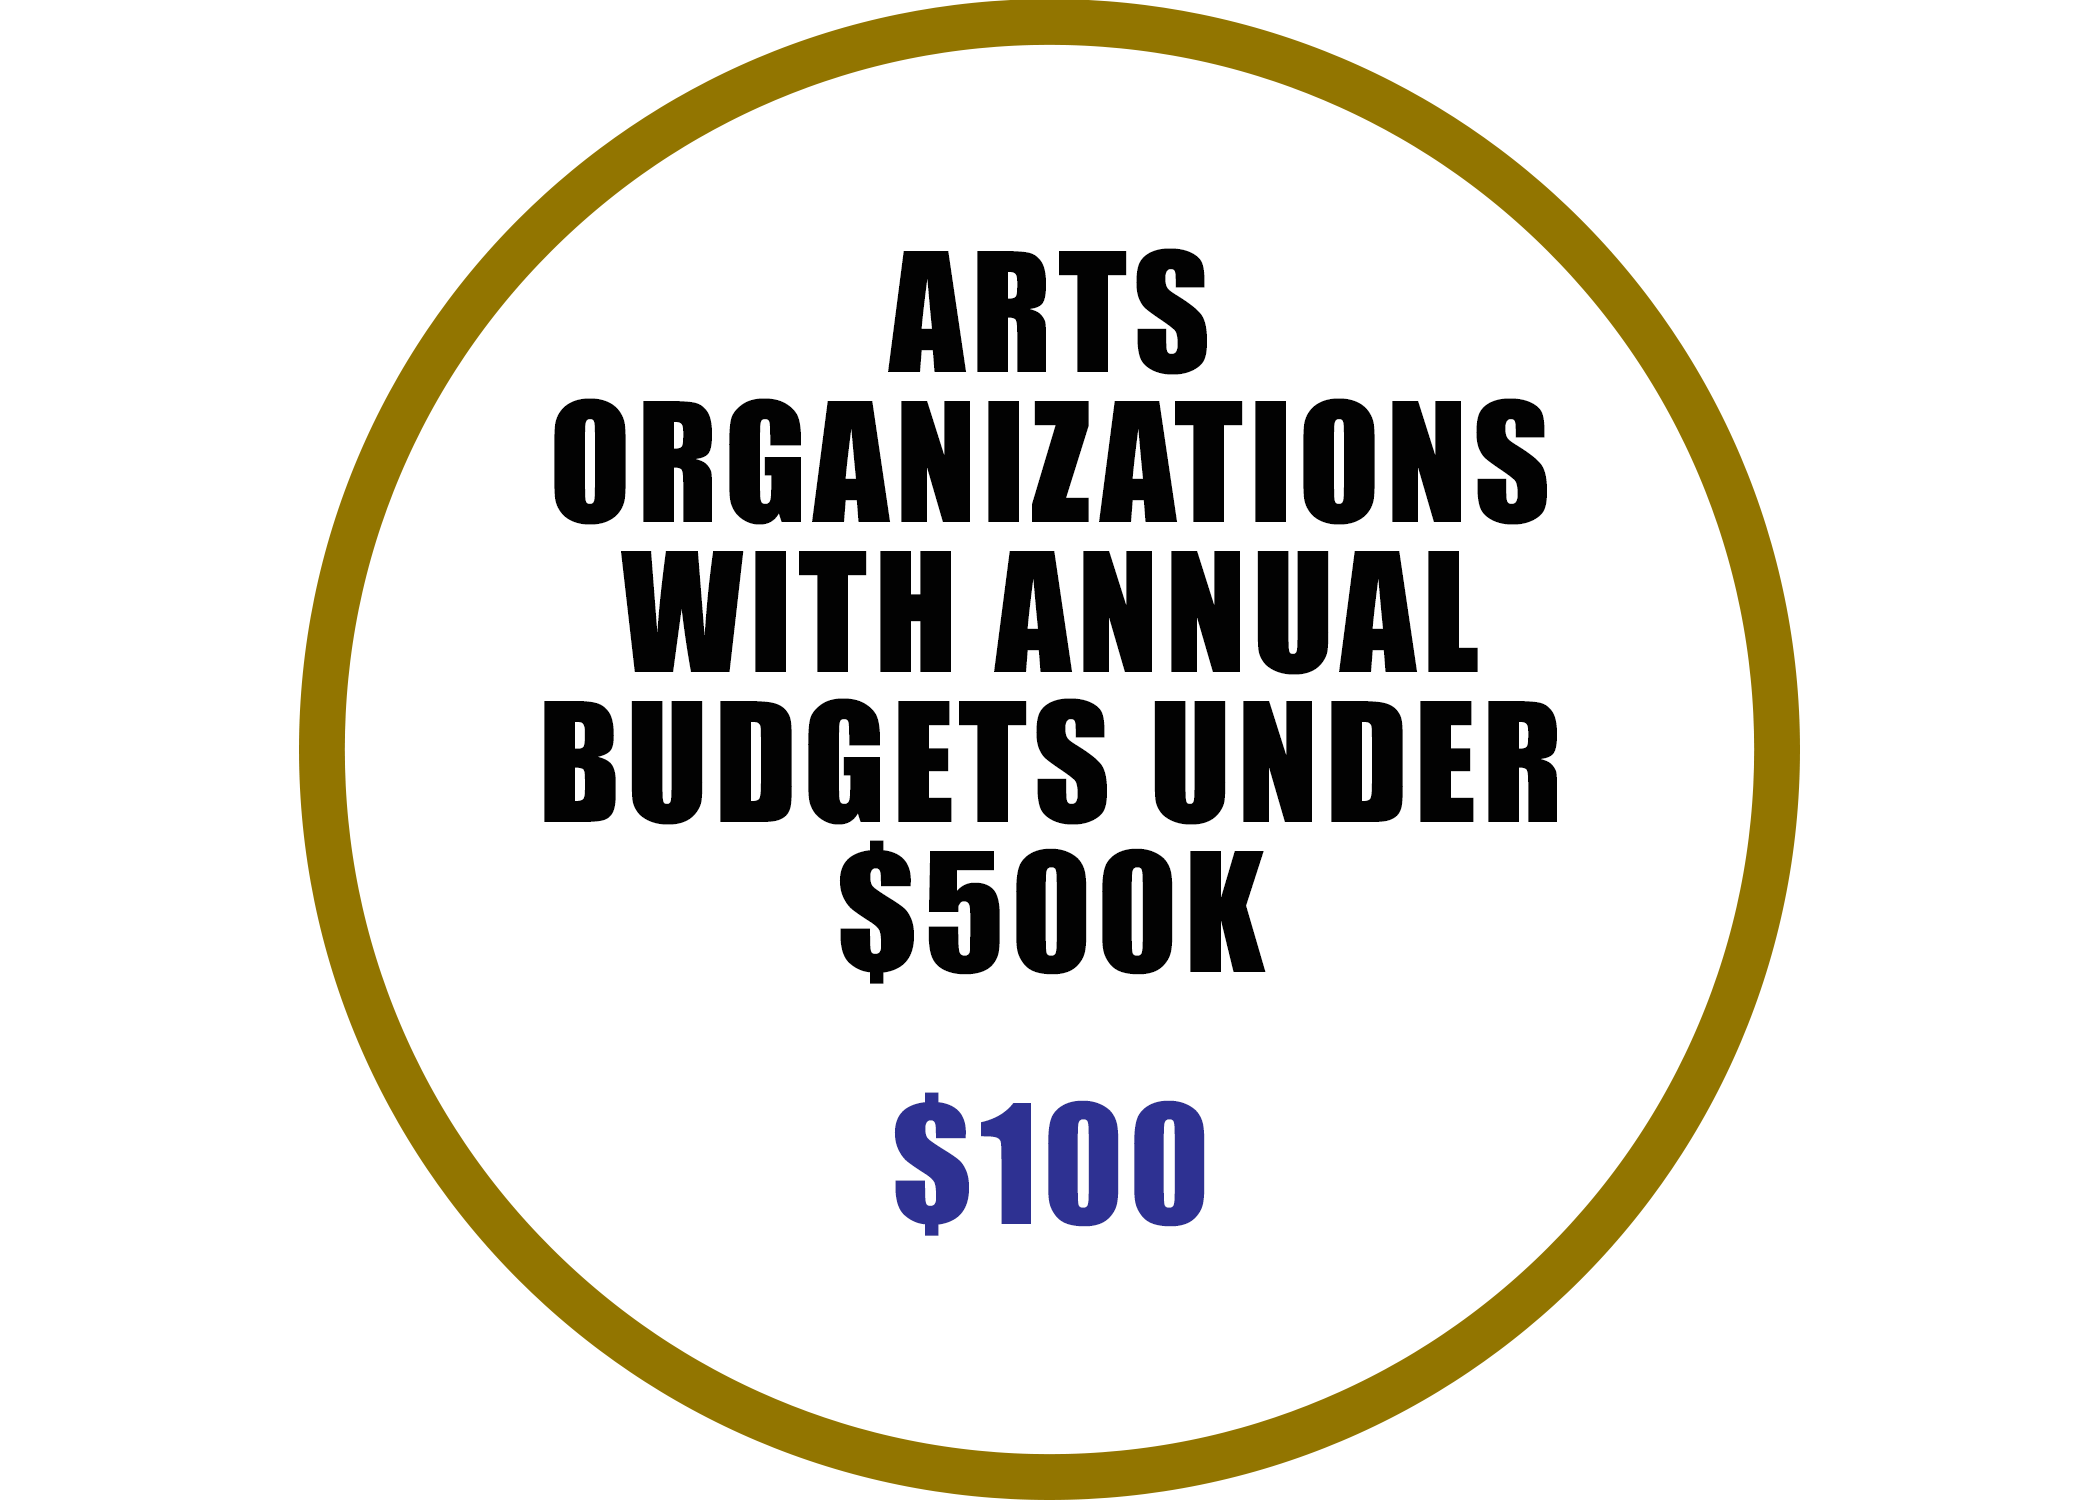 Artist Organizations with budgets under $500K Membership benefits include:  -Event Rental Discount -Complimentary Booth at Baton Rouge Arts Market -Voting rights at Annual Meeting -4 Arts Council e-blast promotions per year -Discounted professional development seminars -Listed on Arts Council website with link to member's website -Invitation to Networking Events hosted by Arts Council -Complimentary admission to Arts Summit -Events included on Community Arts Calendar & Newsletter Spotlight